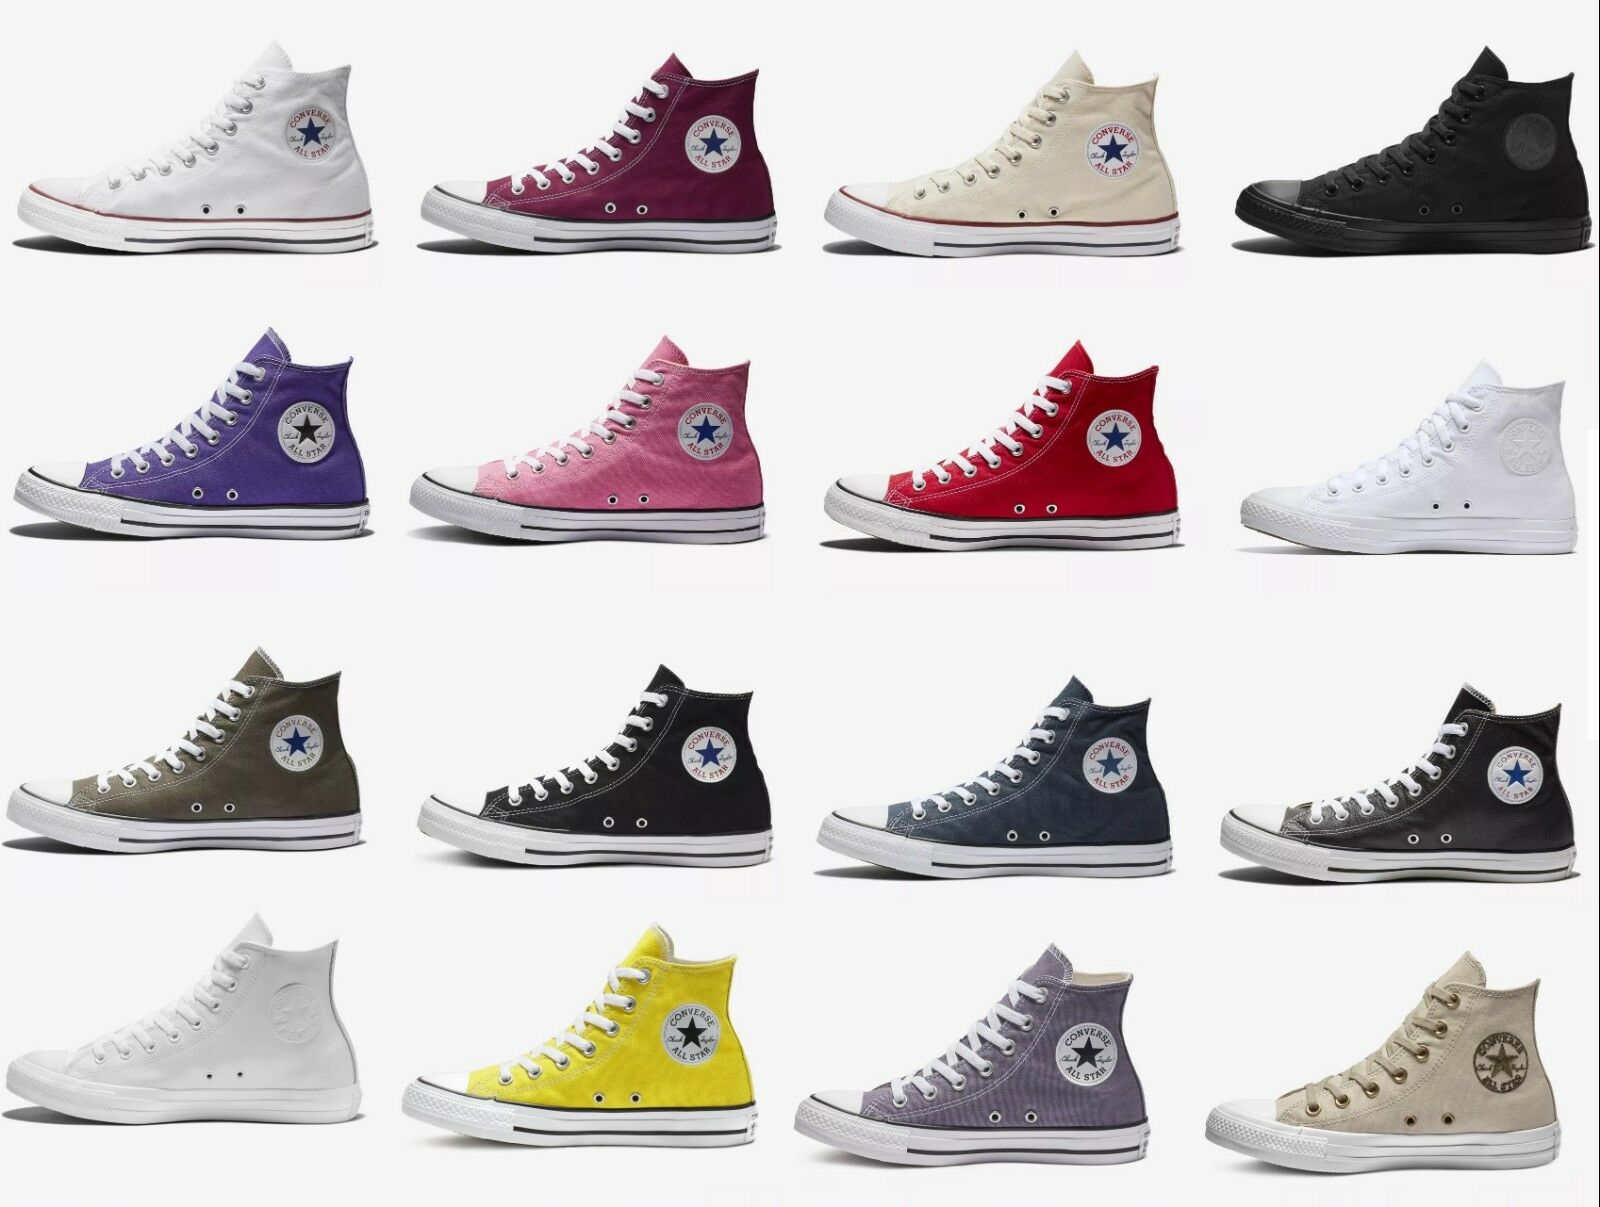 NEW Converse Chuck Taylor All Star High Top Canvas Casual Sneakers Unisex shoes